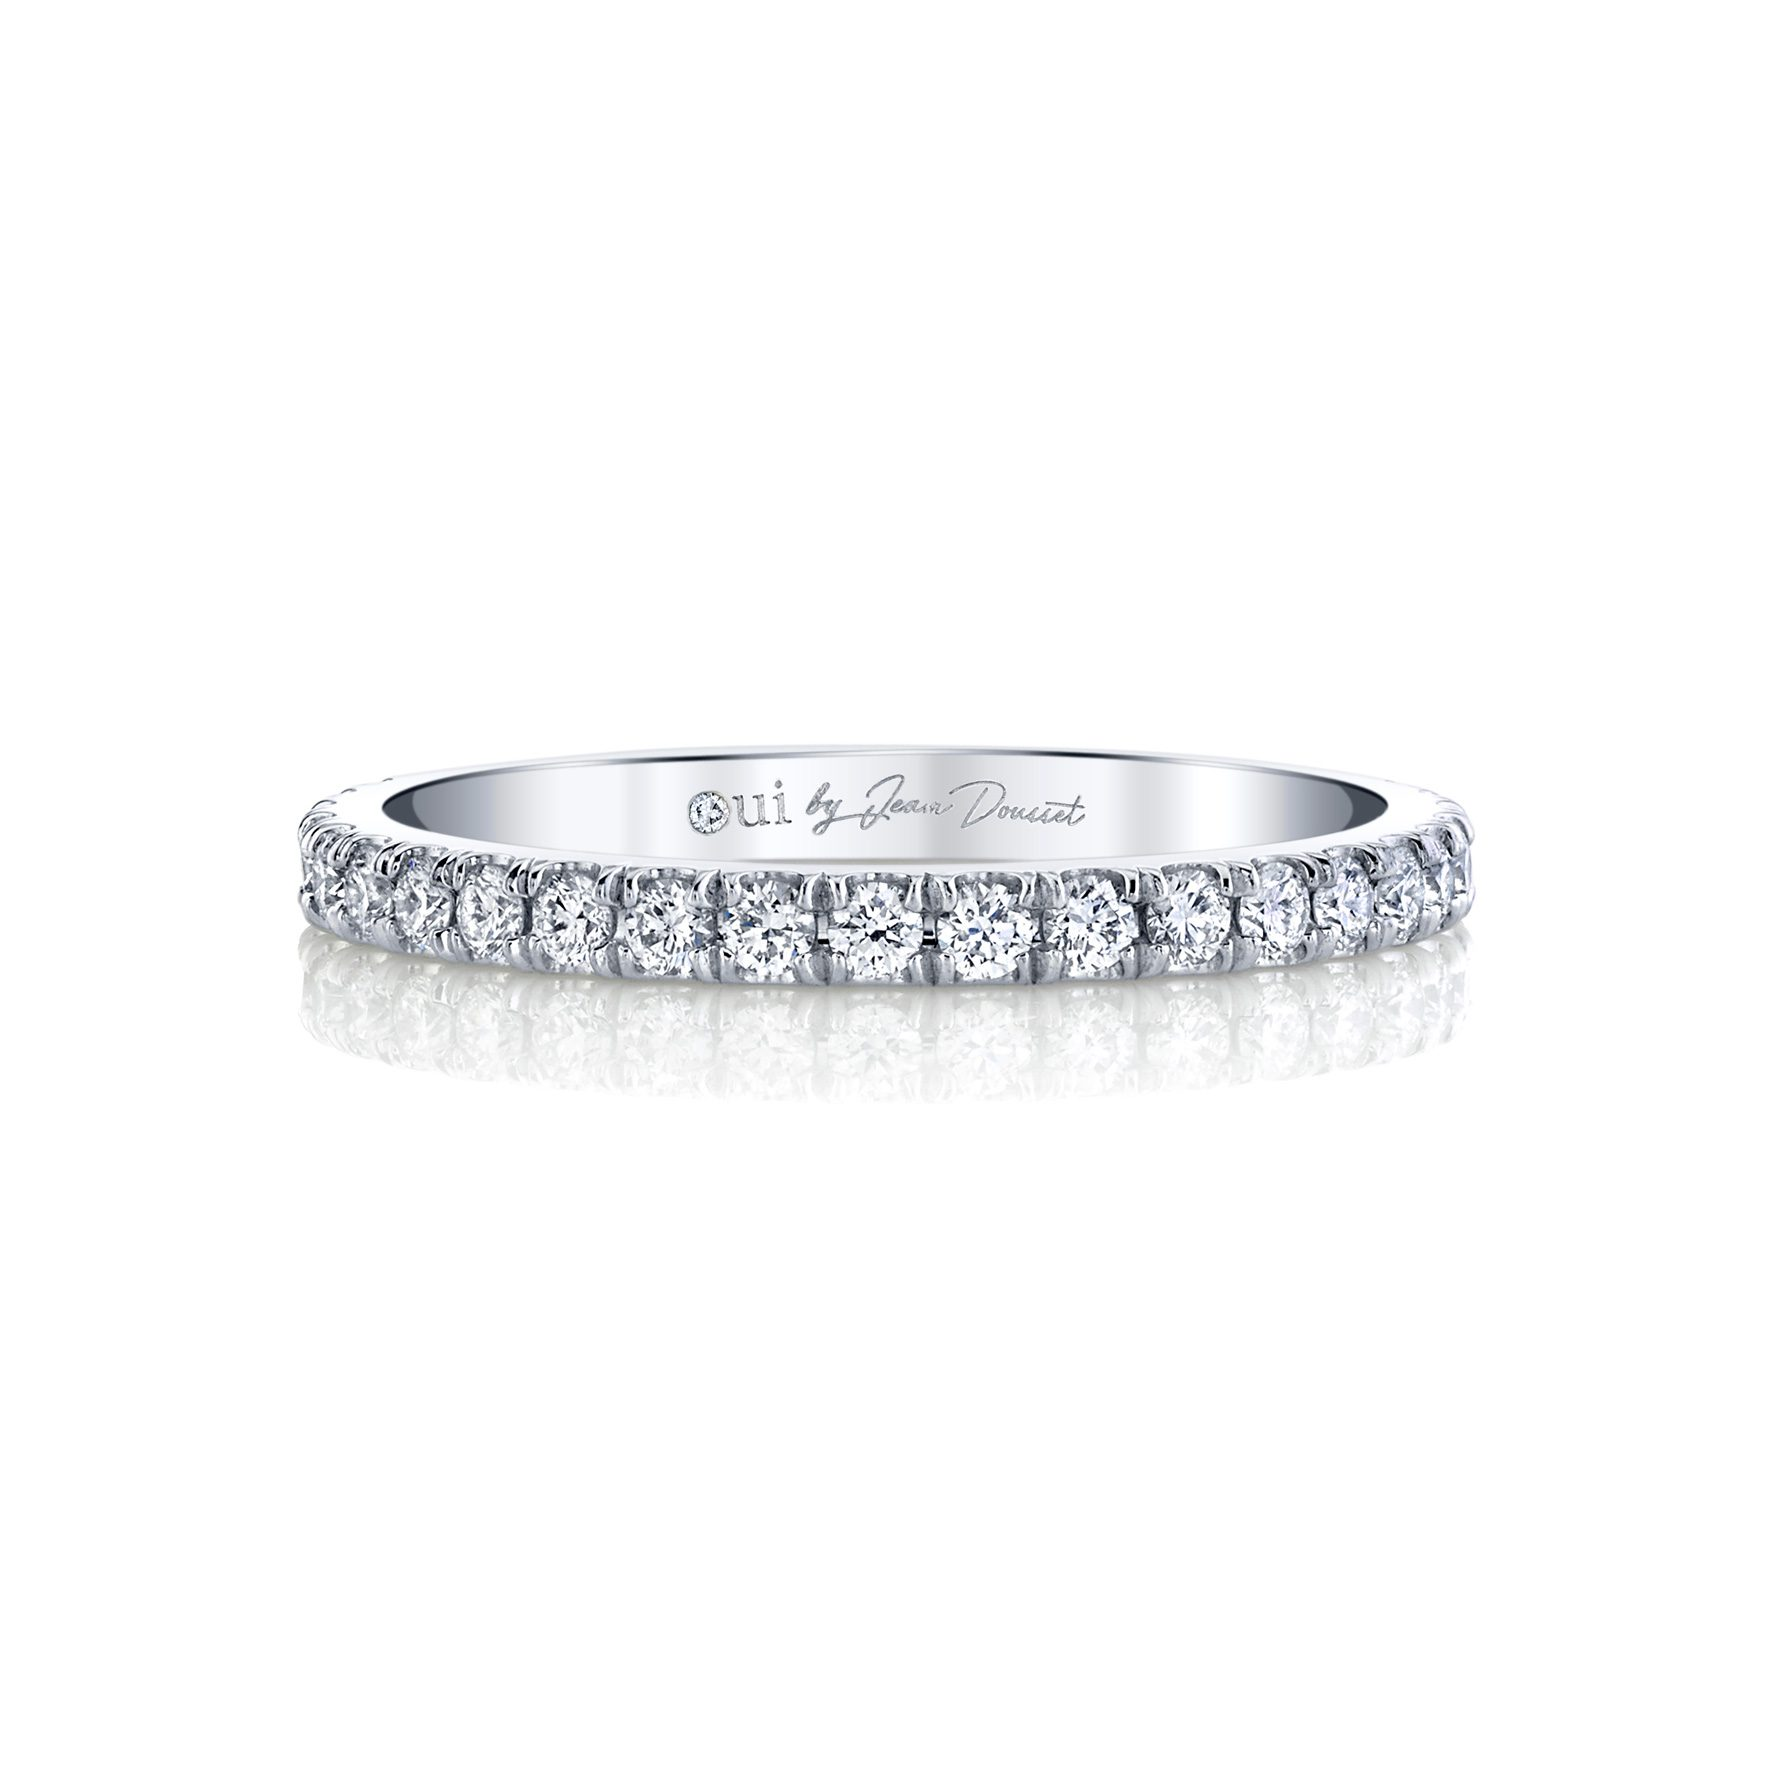 Eloise Women's Wedding Band 18k White Gold Front View by Oui by Jean Dousset